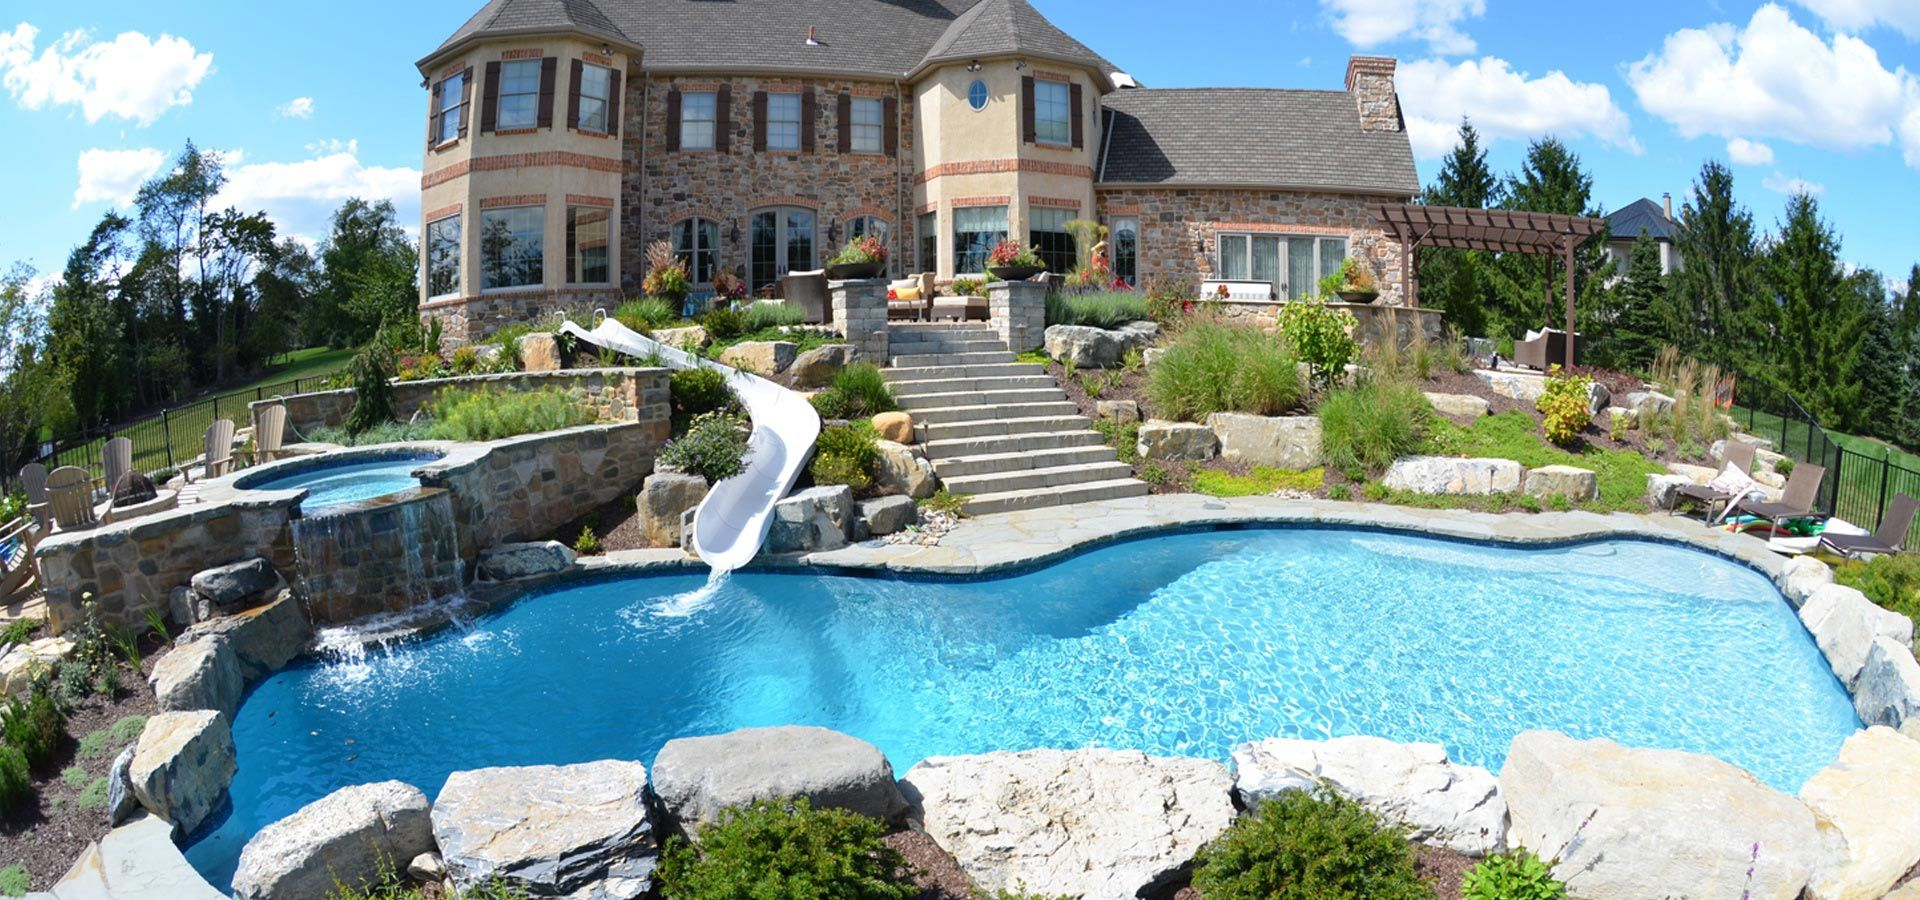 105 incredible pool and spa design - Custom Swimming Pool Designs